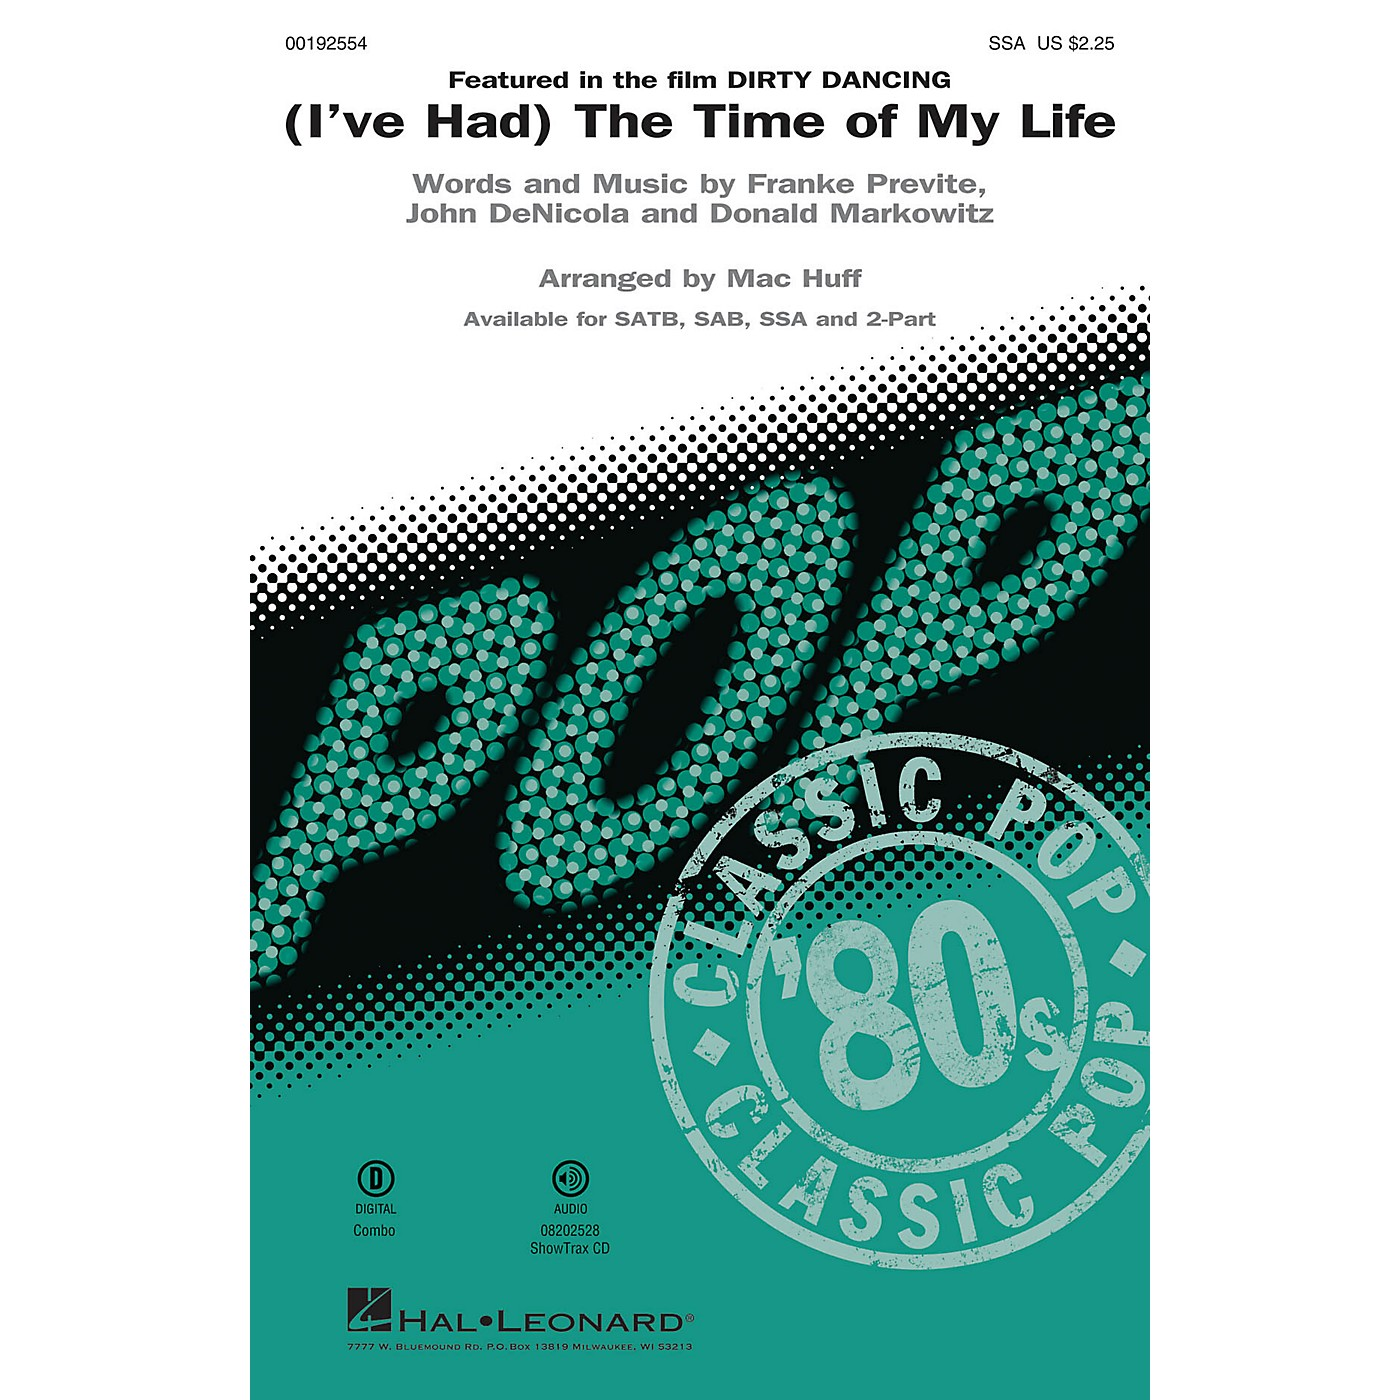 Hal Leonard (I've Had) The Time of My Life (from Dirty Dancing) SSA arranged by Mac Huff thumbnail